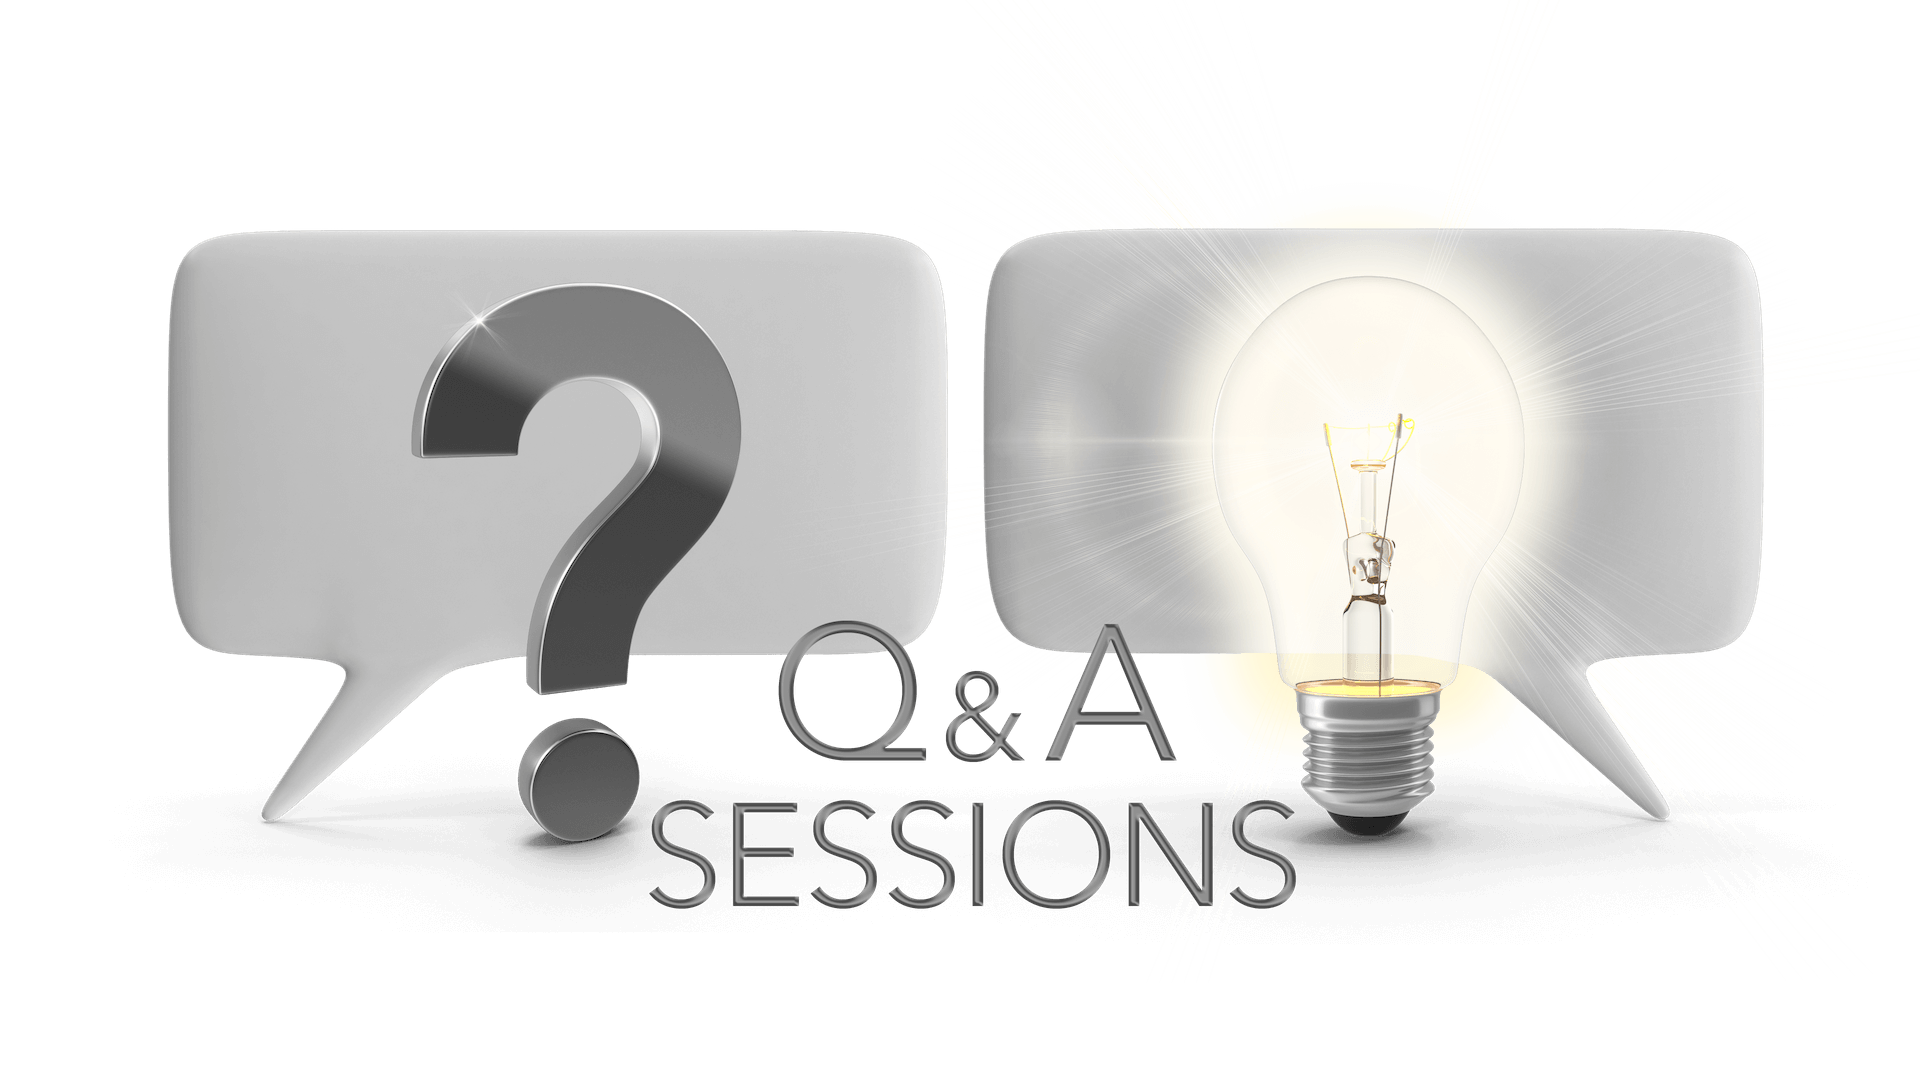 Marketing & Business Q&A Coaching Session